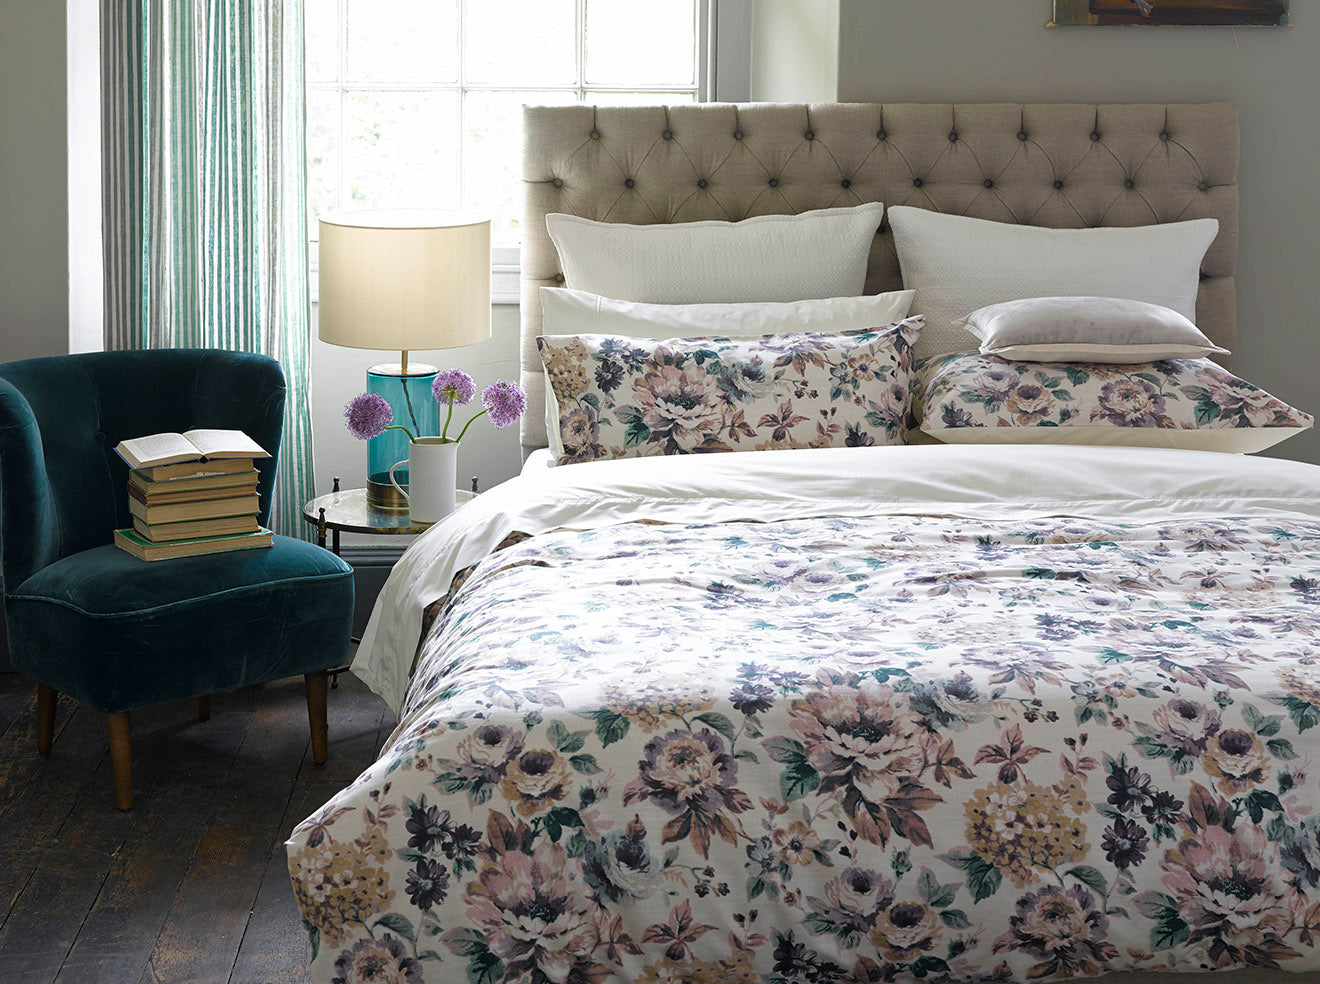 Hartford luxury floral bedding in purple and green from Christy